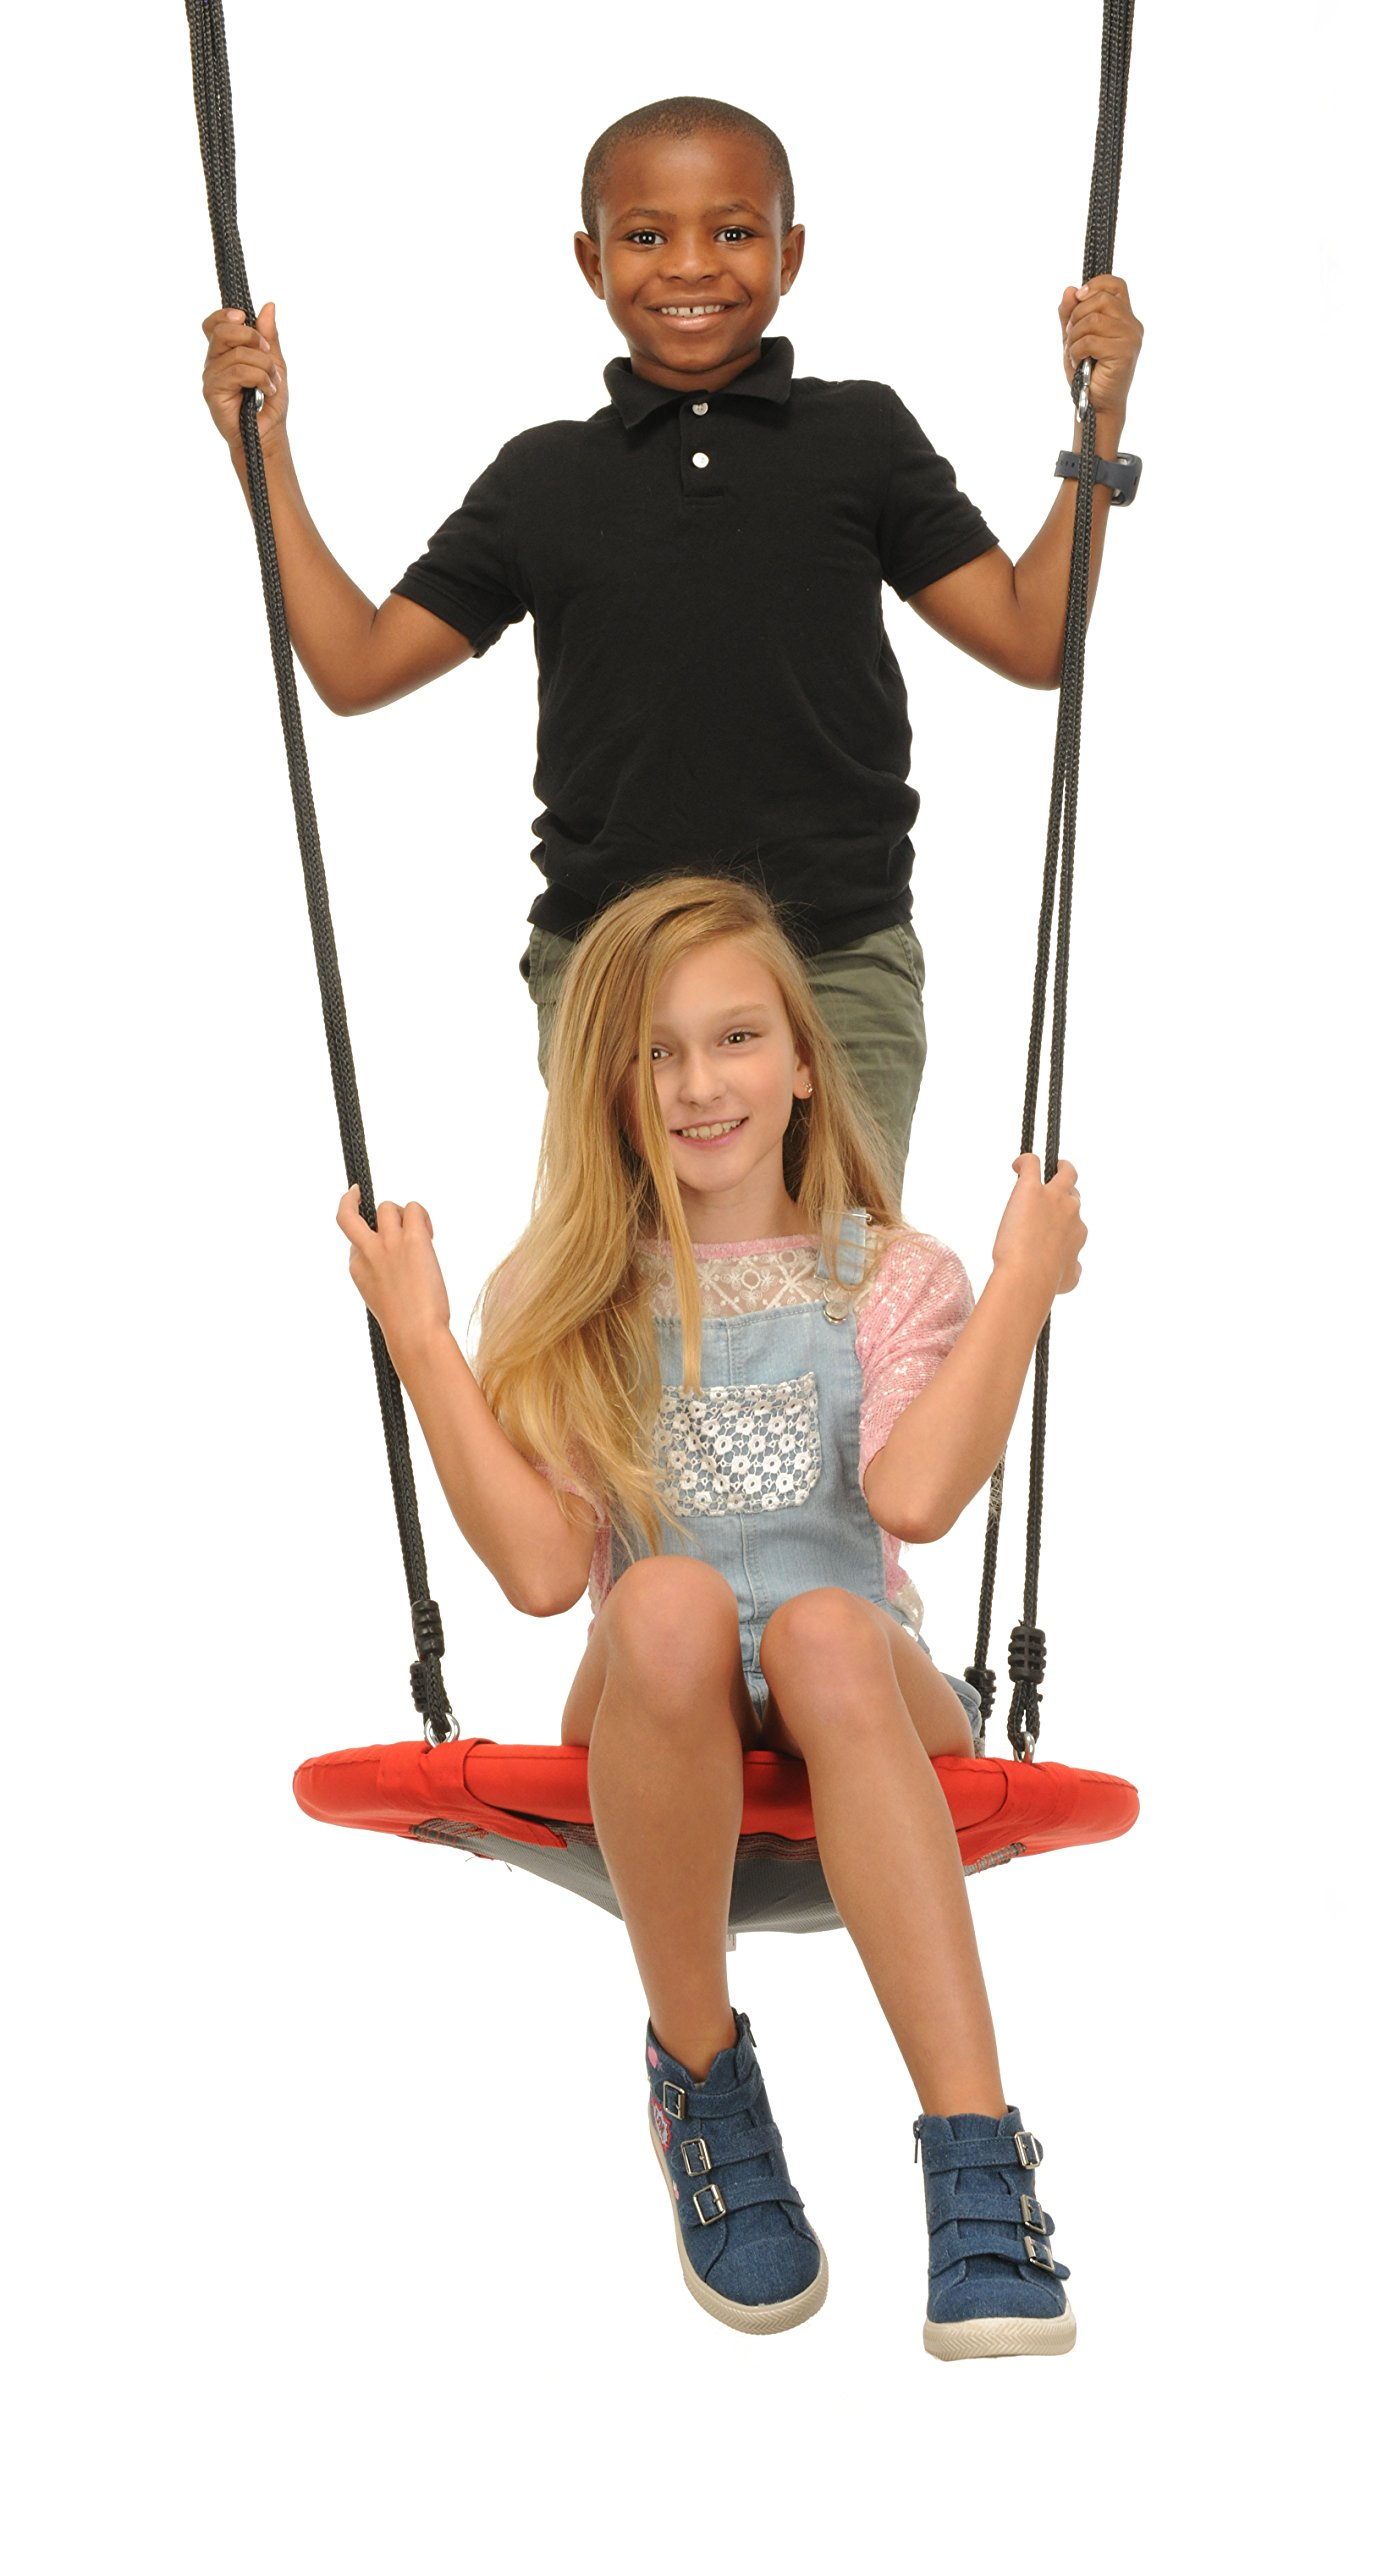 Swinging Monkey Products Fabric Saucer Spinner Swing, Red or Gray - Fun! Easy Install on Swing Set or Tree, Nylon Rope with Padded Steel Frame by Swinging Monkey Products (Image #3)